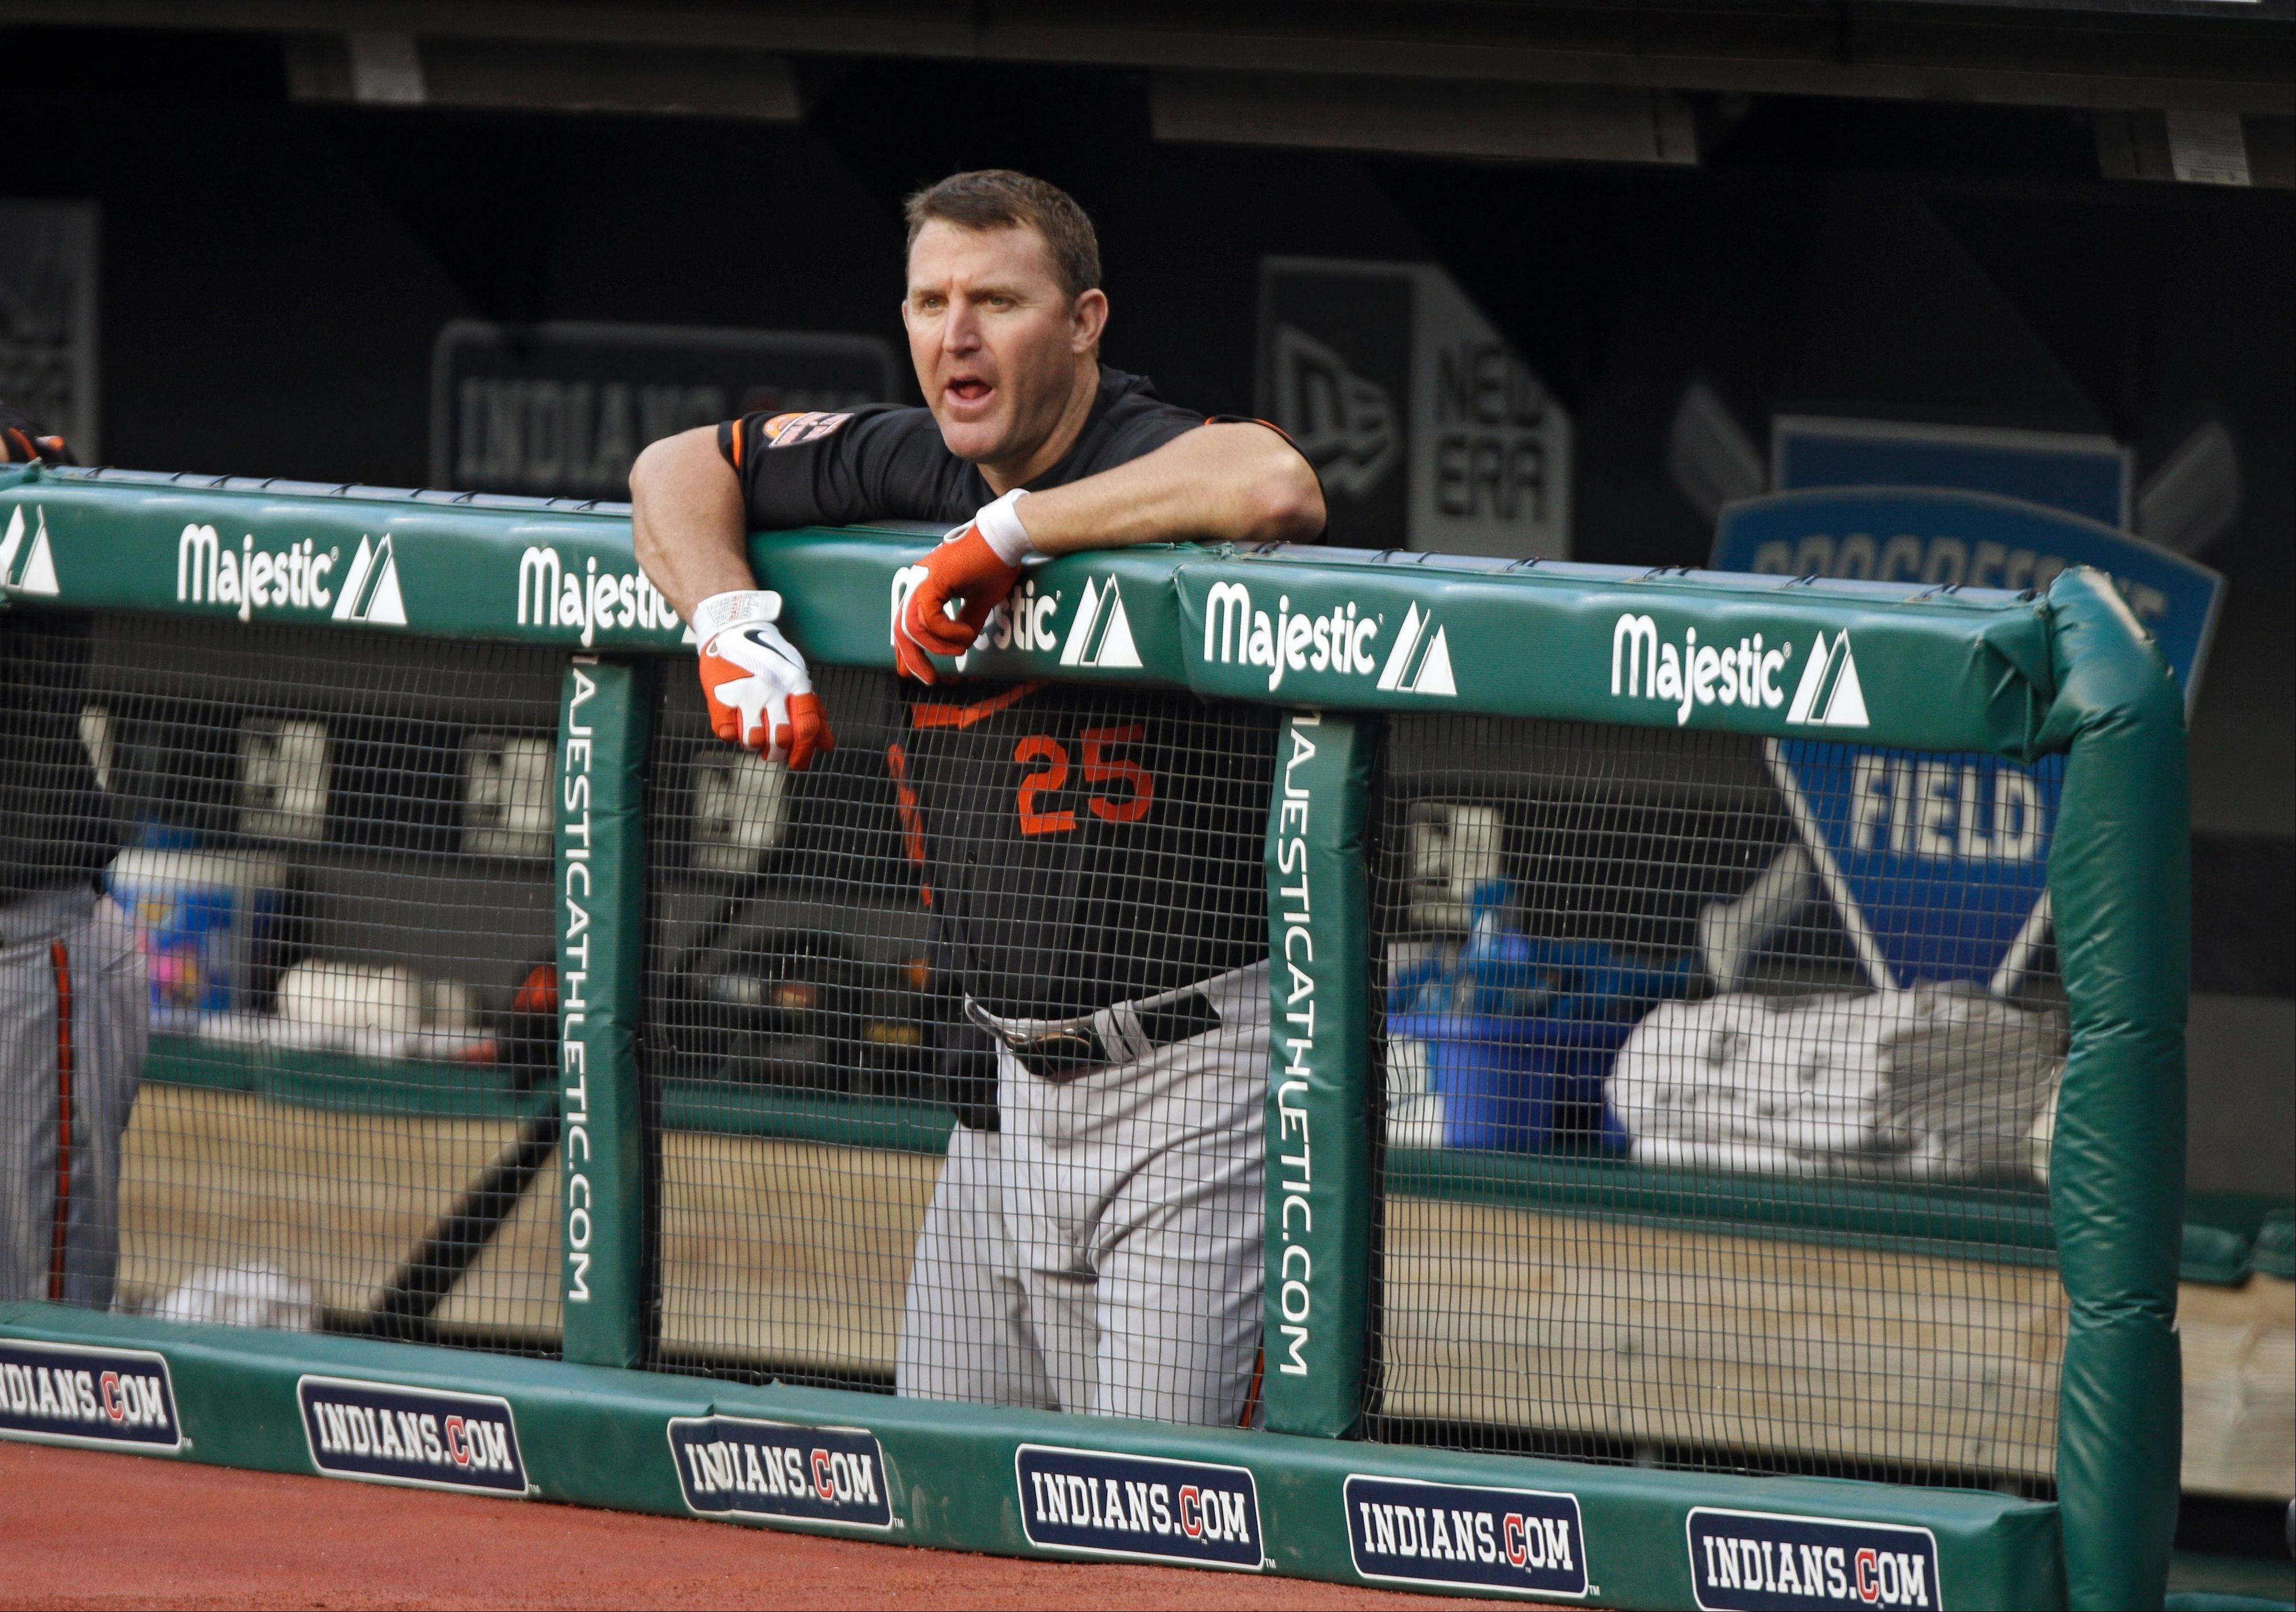 He finished the season with the Baltimore Orioles, but slugger Jim Thome doesn't have a team -- yet. The 42-year-old former White Sox DH said he's staying in shape and waiting for a call.